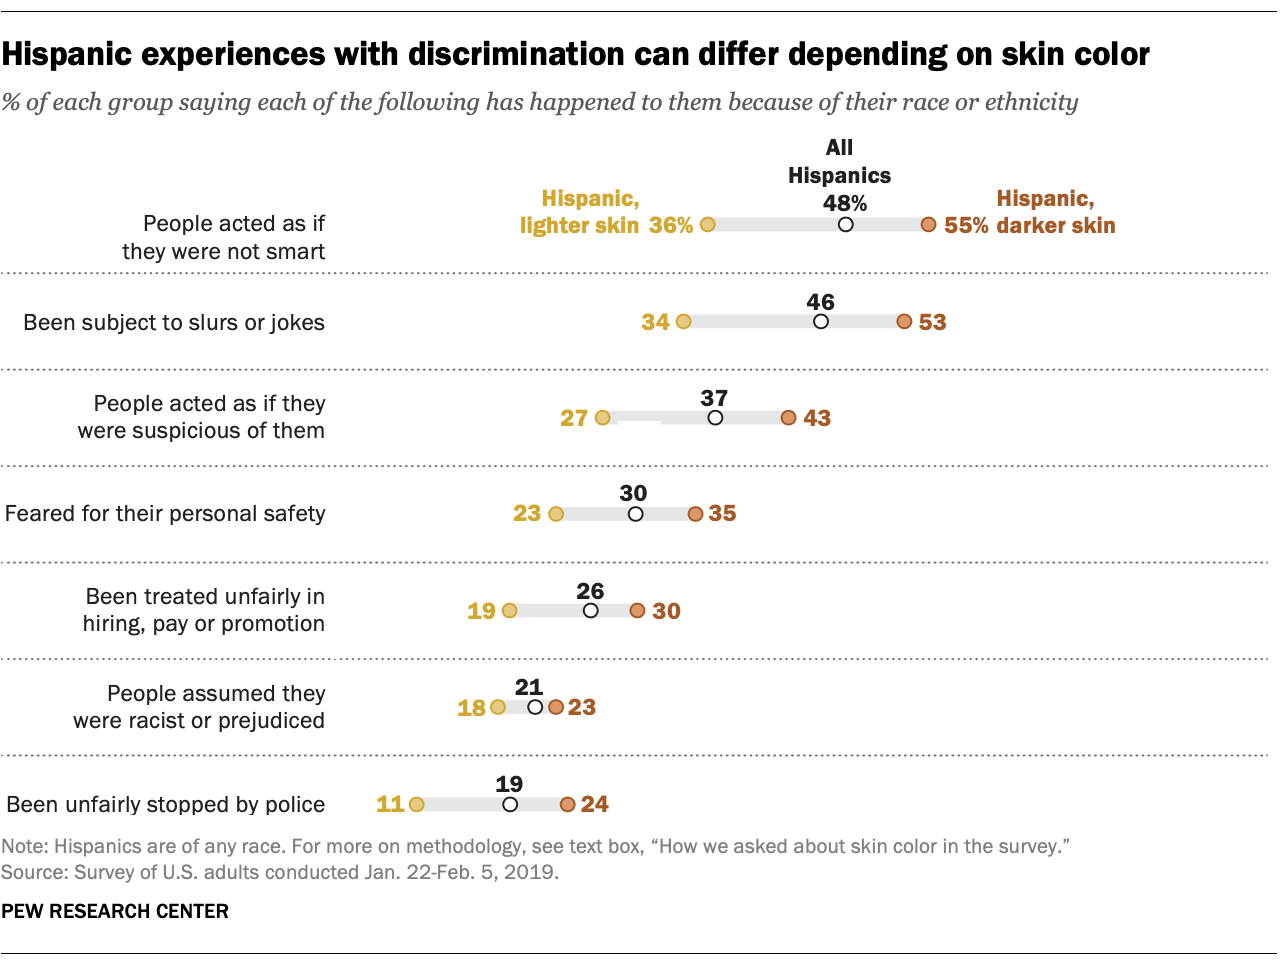 Hispanic experiences with discrimination can differ depending on skin color